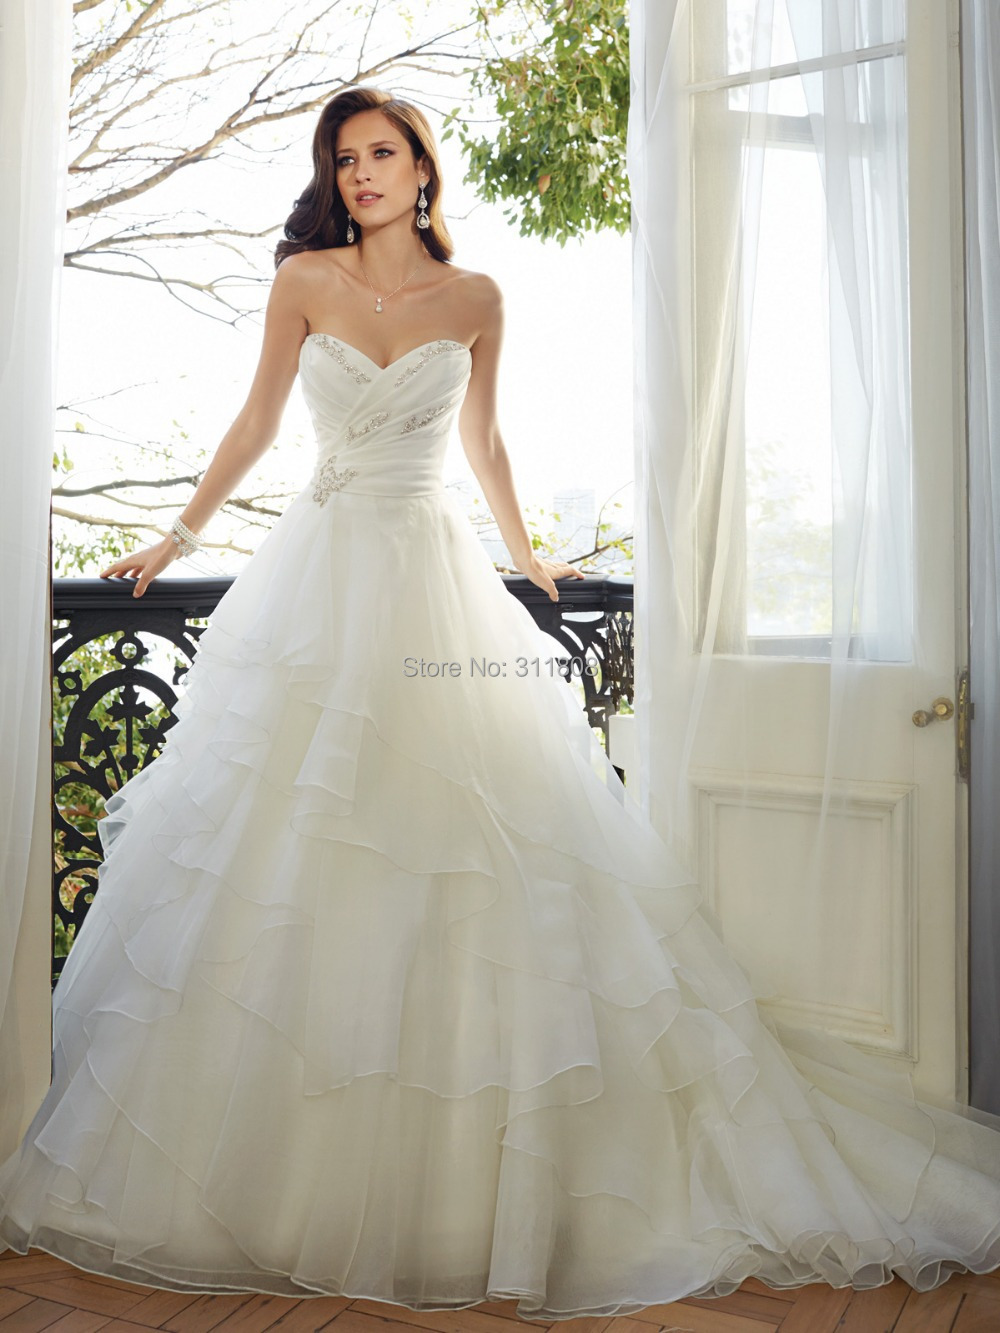 Strapless bridal gowns organza ruffles sweet heart neck a for Sexy designer wedding dresses